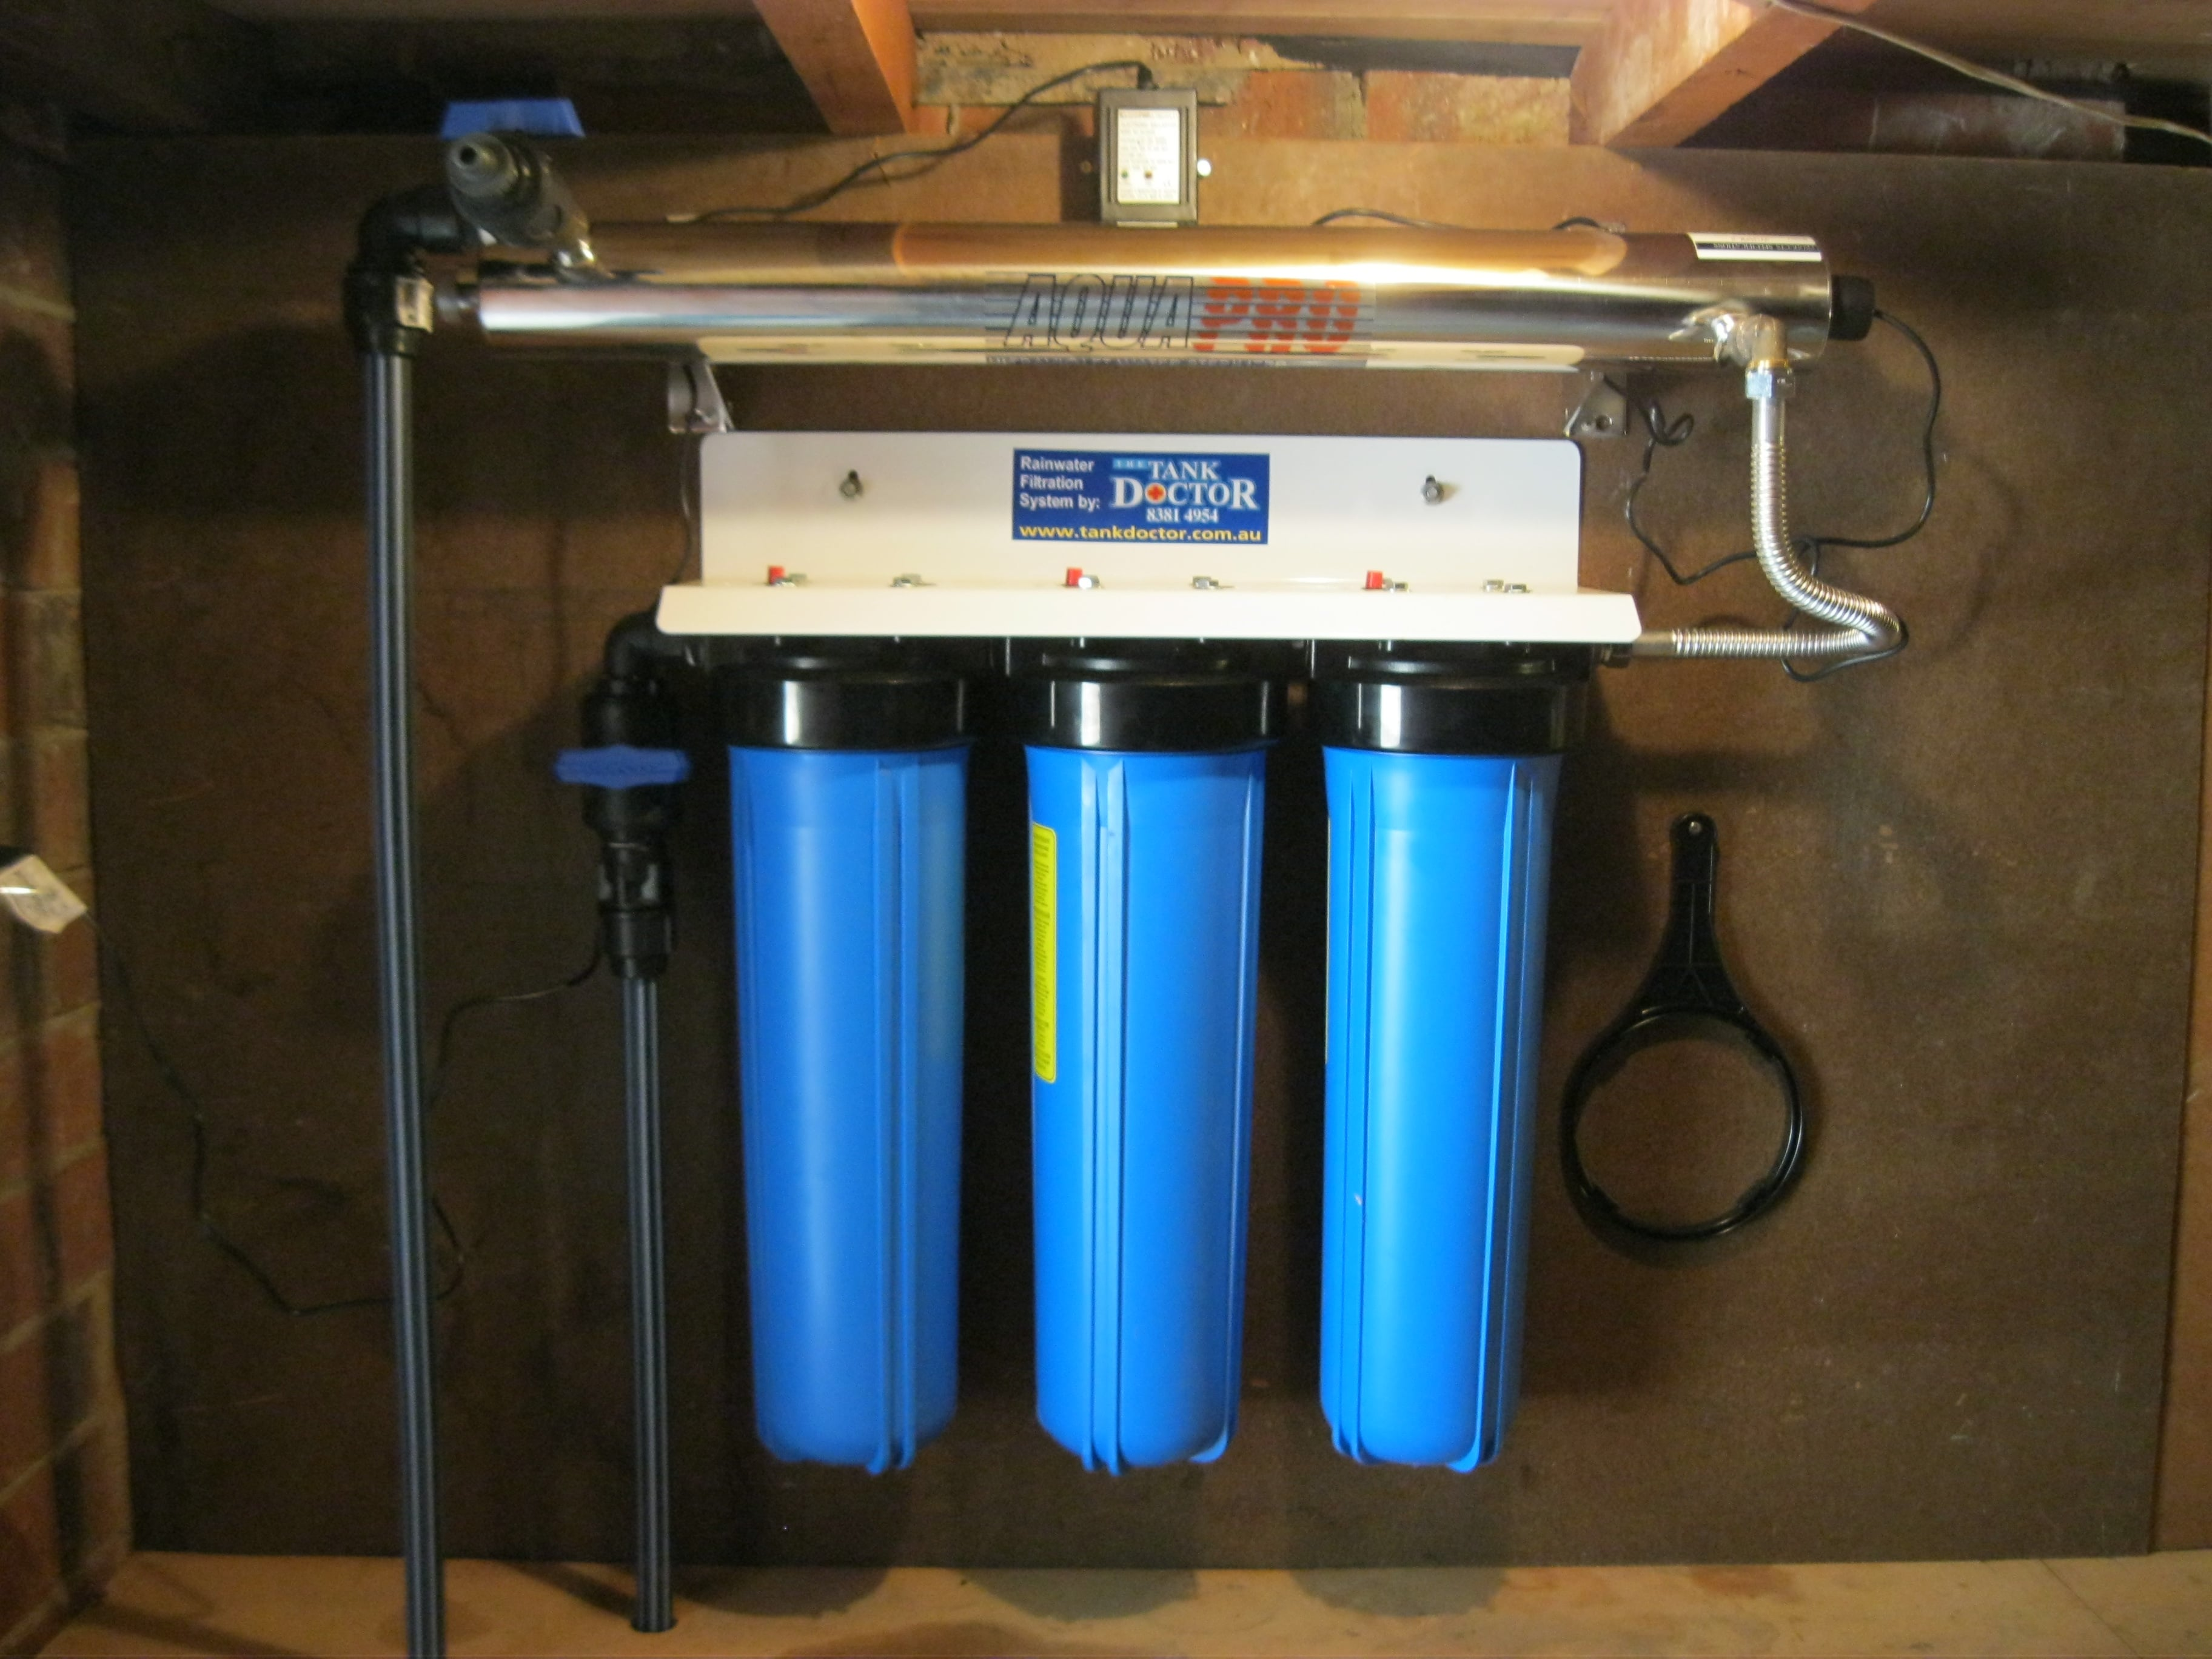 Whole House Filtration Systems Whole House Triple Cartridge Rainwater Filtration System The